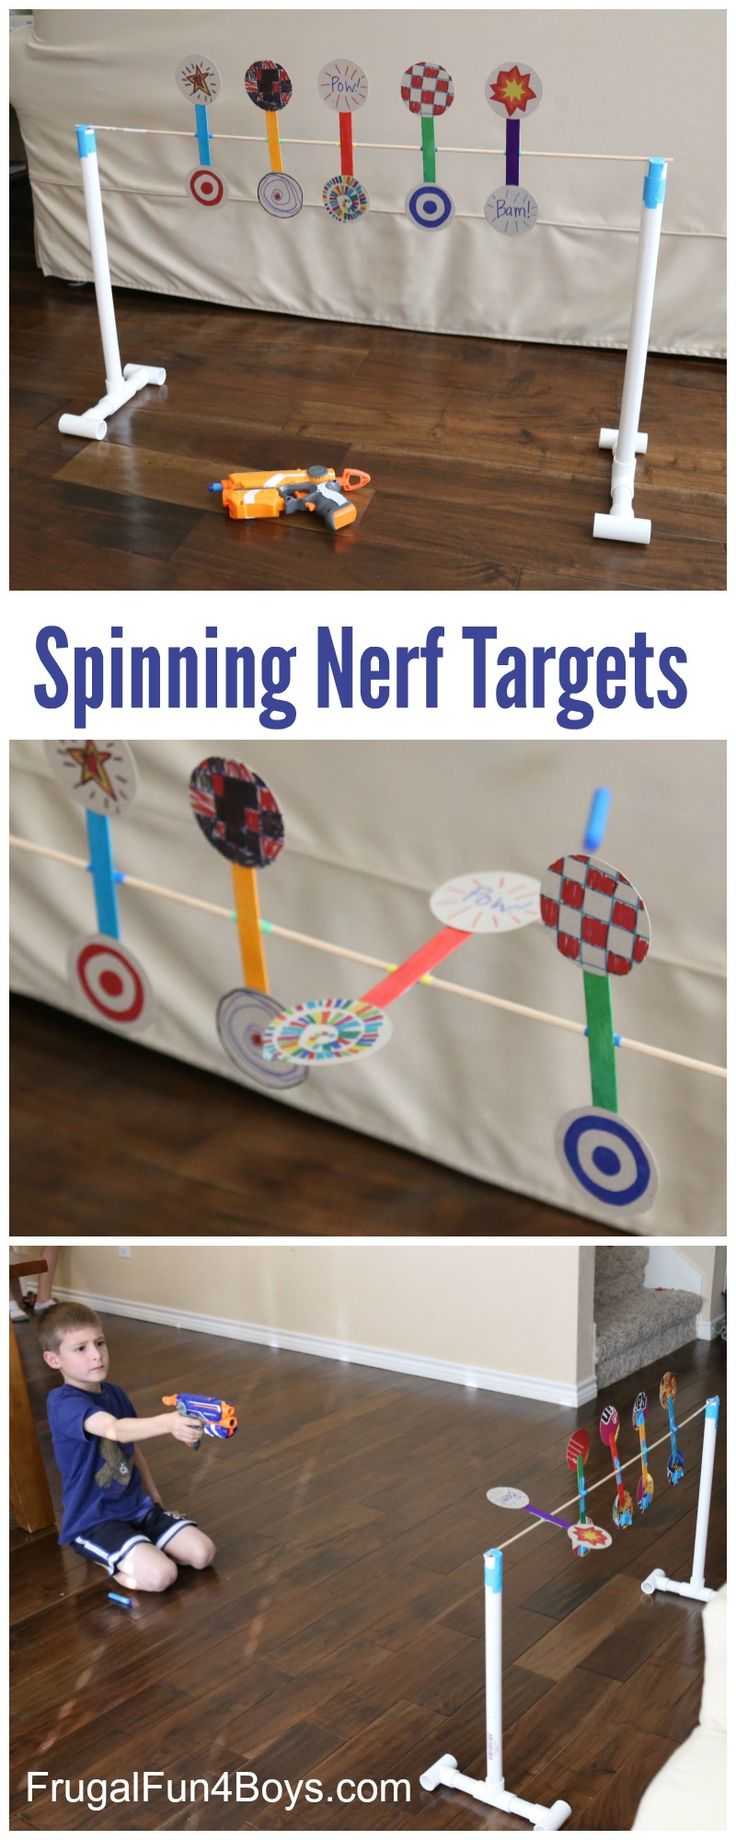 Spinning Nerf Target Game #IndoorGames #OutdoorGames #Games #PartyGames #Carnival #Western #ShootingGalleries